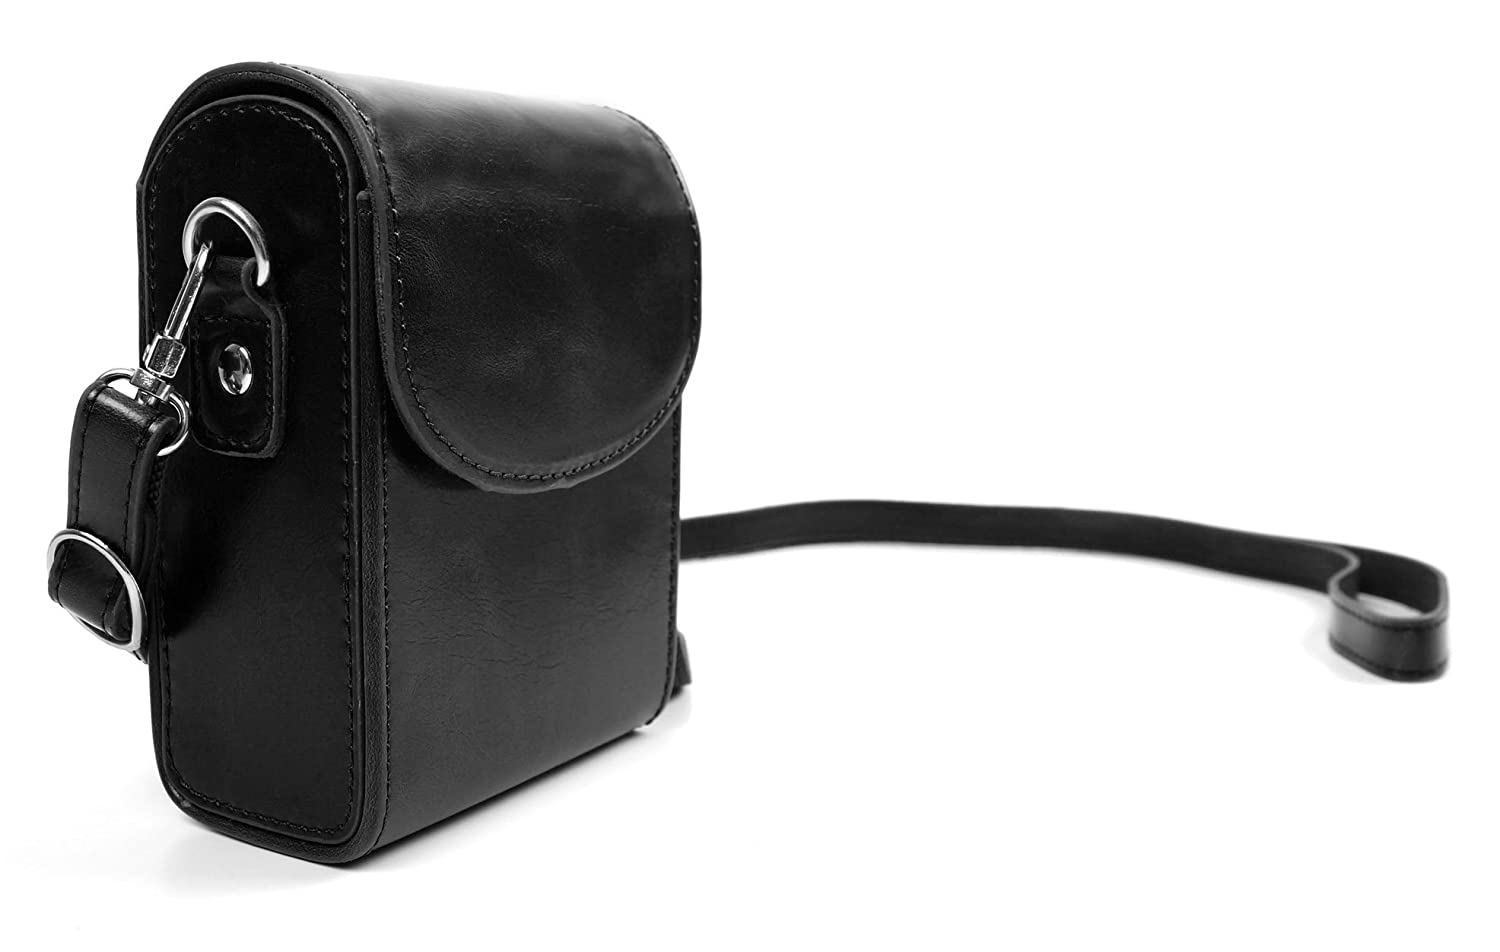 DURAGADGET Exclusiveレトロbox-style Case With Shoulderストラップでブラックフェイクレザーfor the新しいNikon Coolpix s2900 , Coolpix s33、Coolpix s3700、Coolpix s3600、Coolpix s5200 , s6400 , s6500 , s6600 , s6700 , s6800 , s6900 , s9400 & The s9500 B012CUD55C